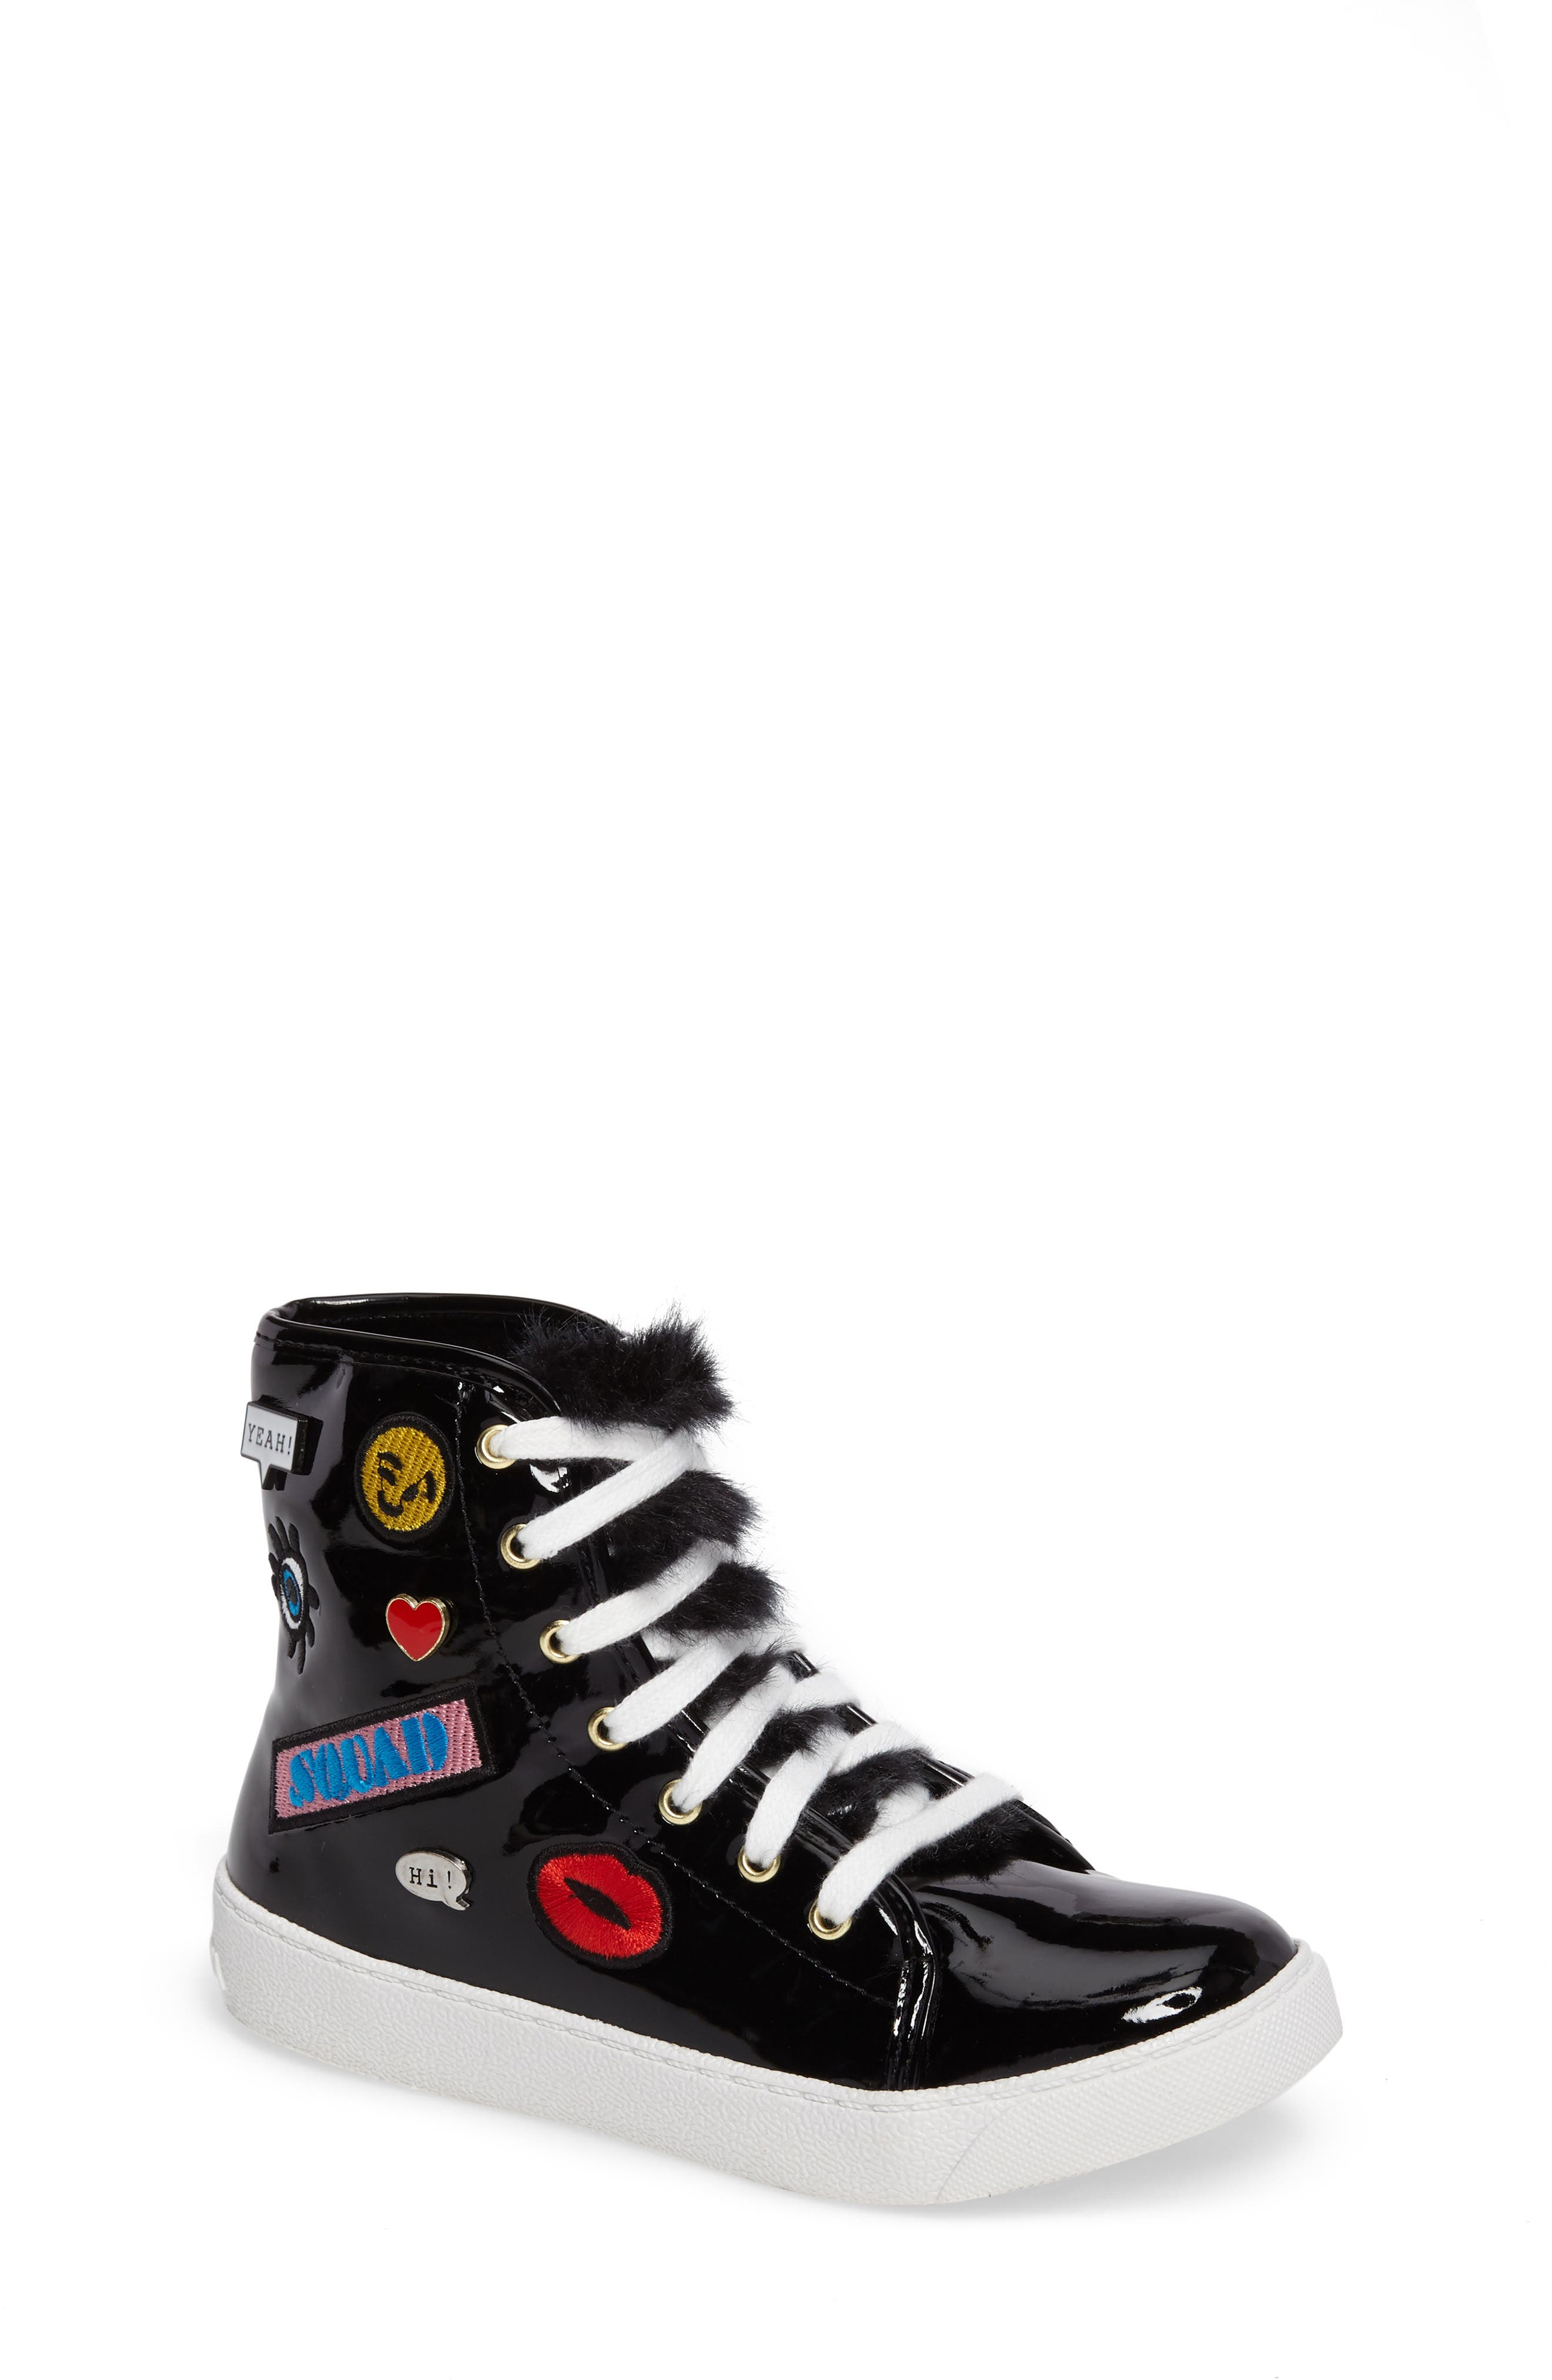 Sam Edelman Harriet Heidi High-Top Sneaker (Toddler, Little Kid & Big Kid)